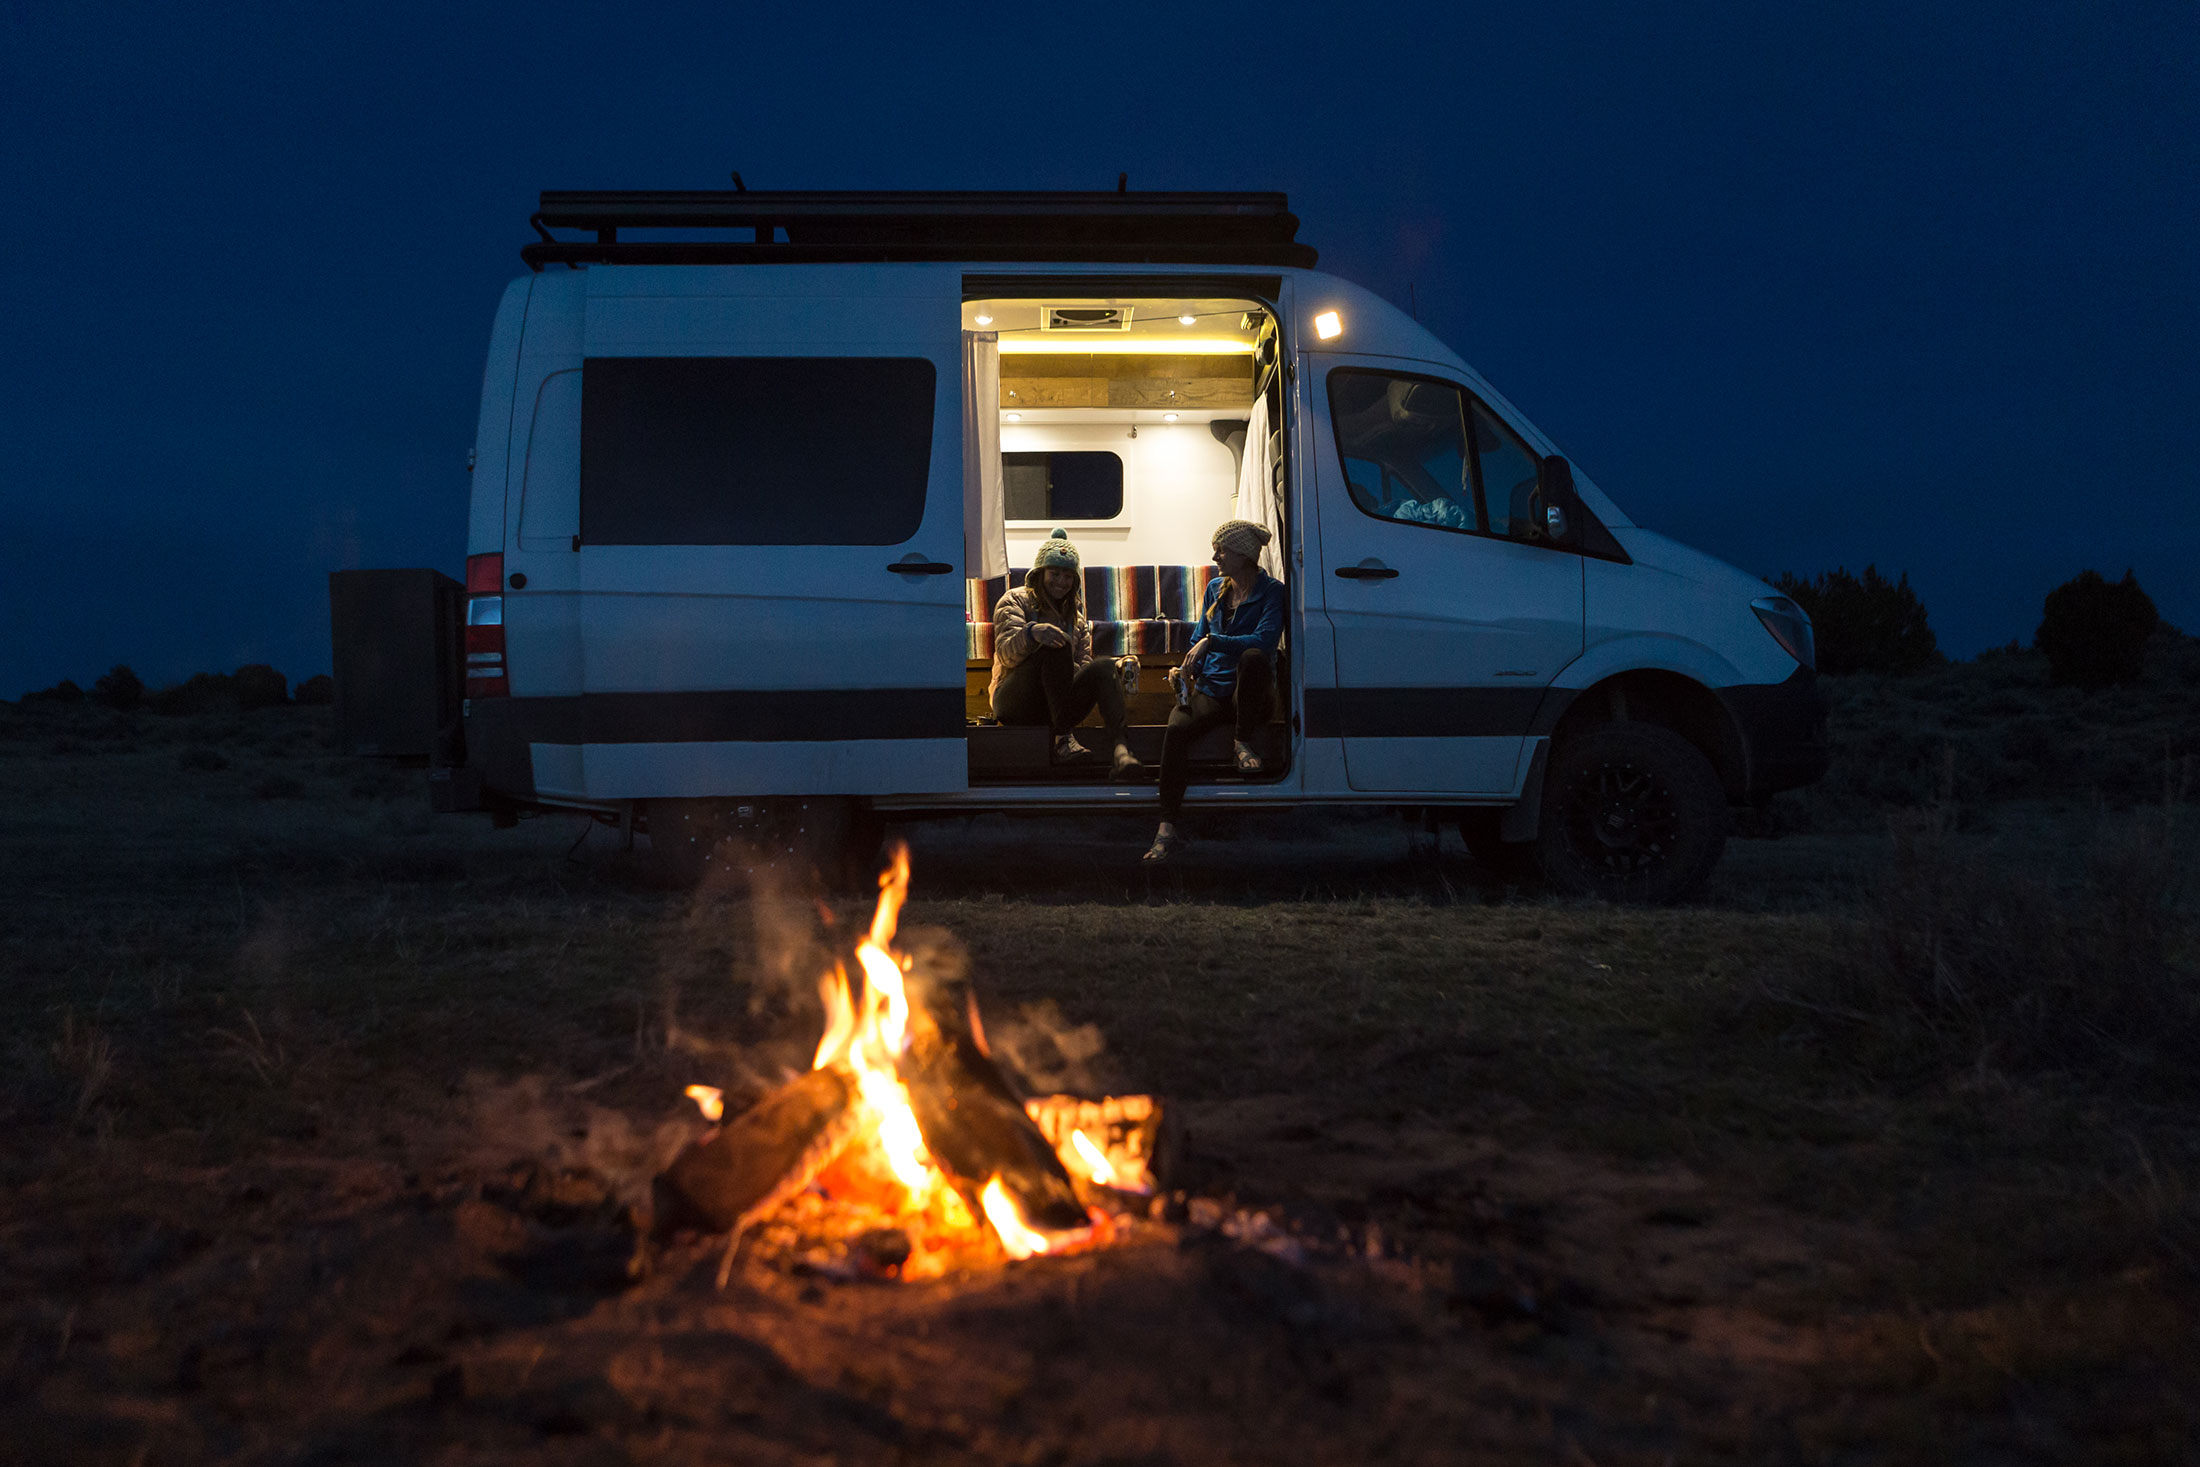 vanlife and camping